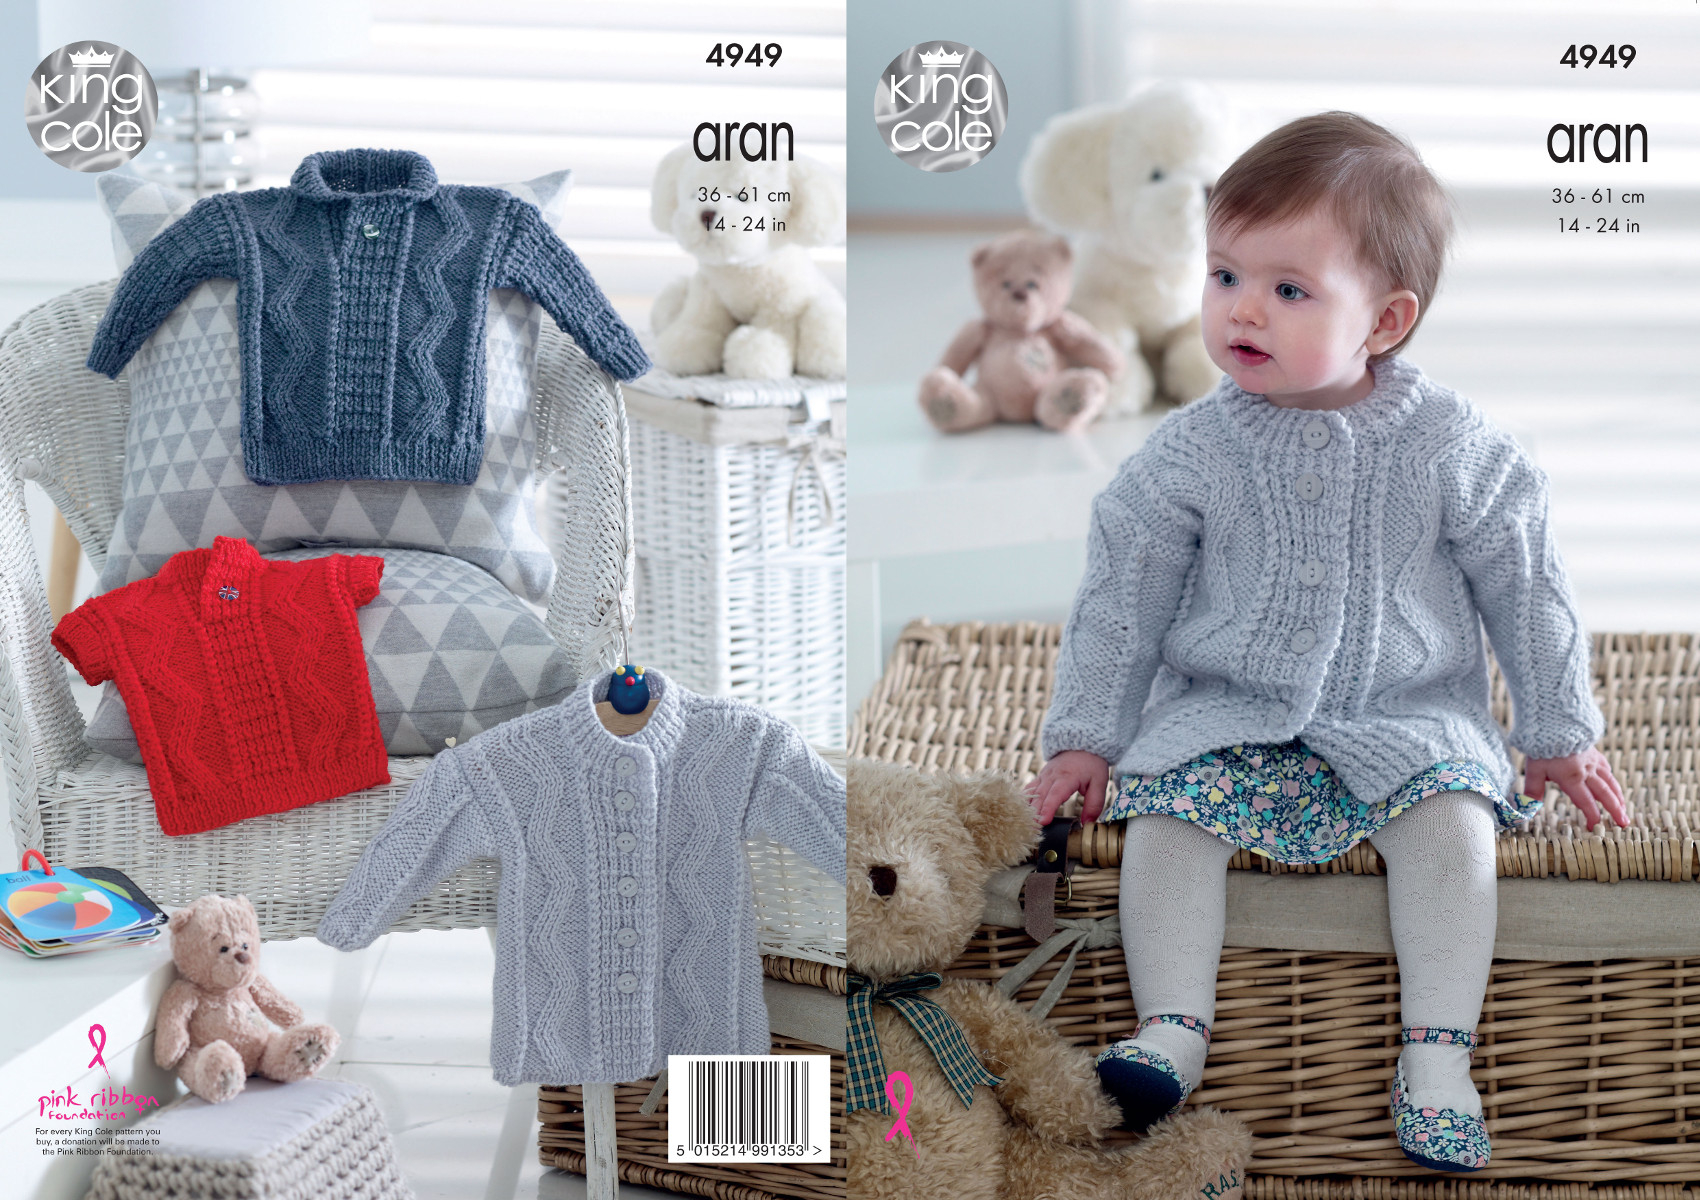 Childrens Aran Knitting Patterns Details About King Cole Ba Aran Knitting Pattern Cabled Coat Jumper Sleeveless Pullover 4949